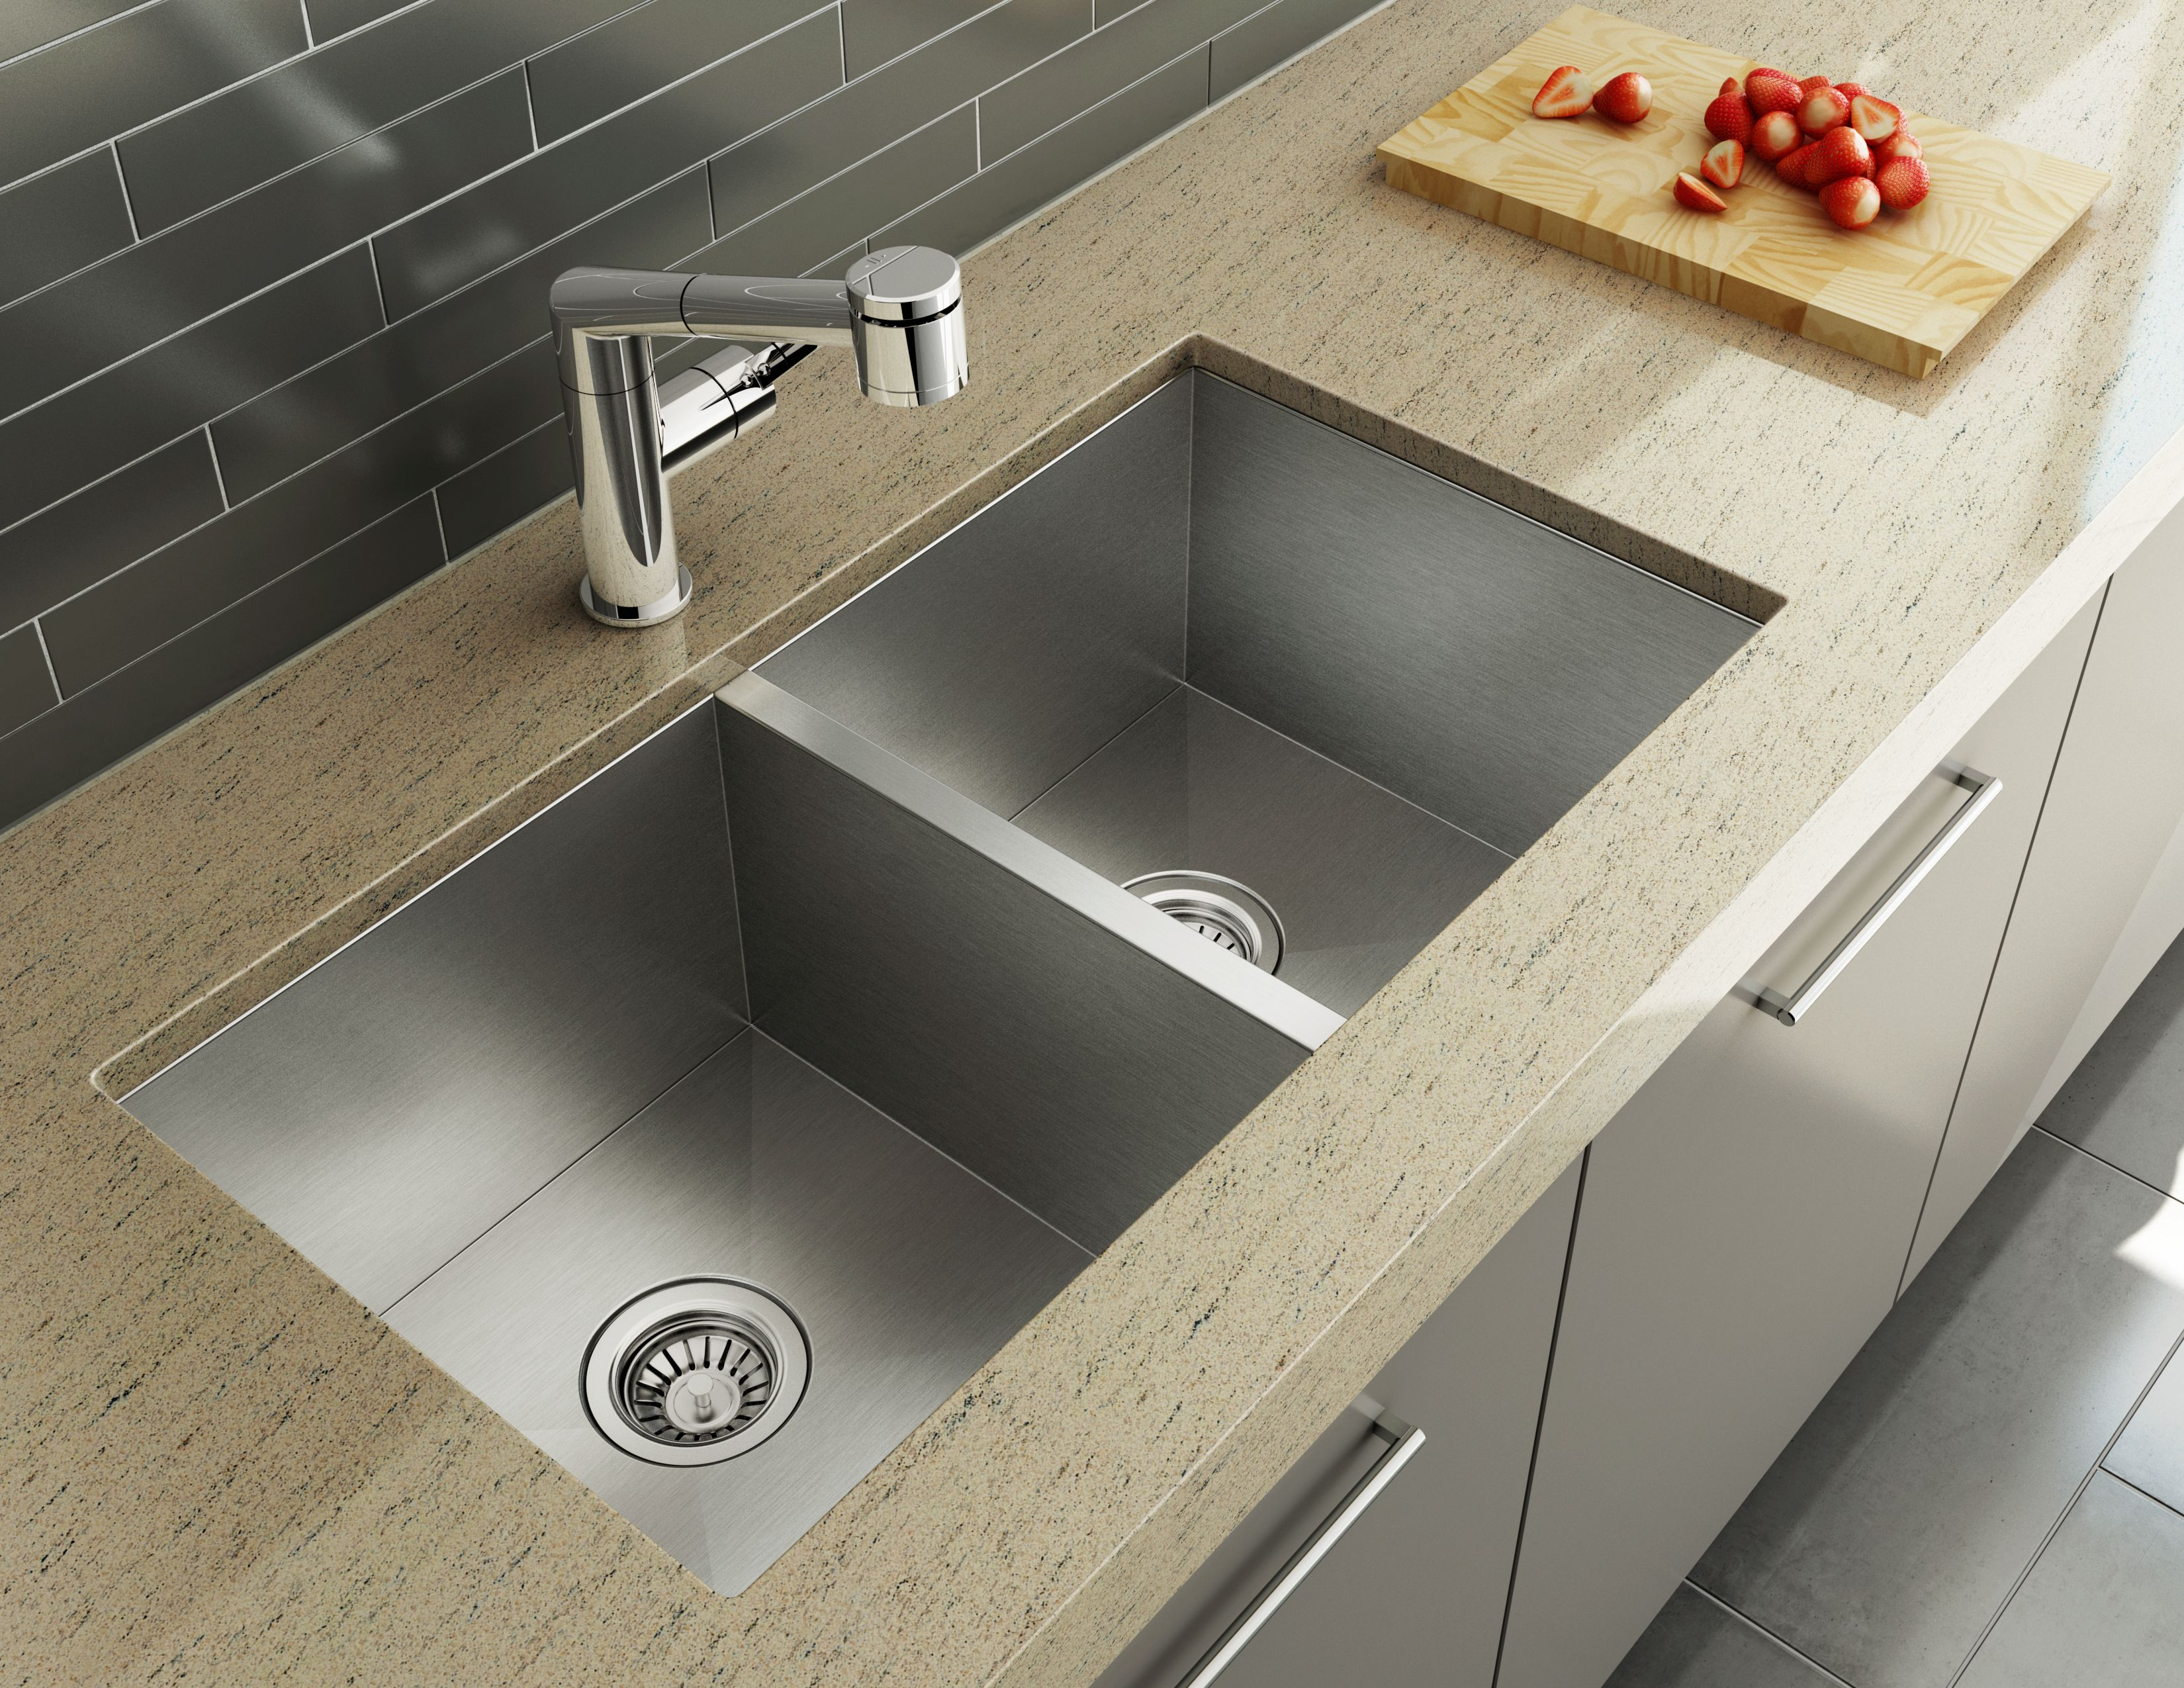 Atelier kitchen sink collection new condo kitchen faucet 20243 aquabrass